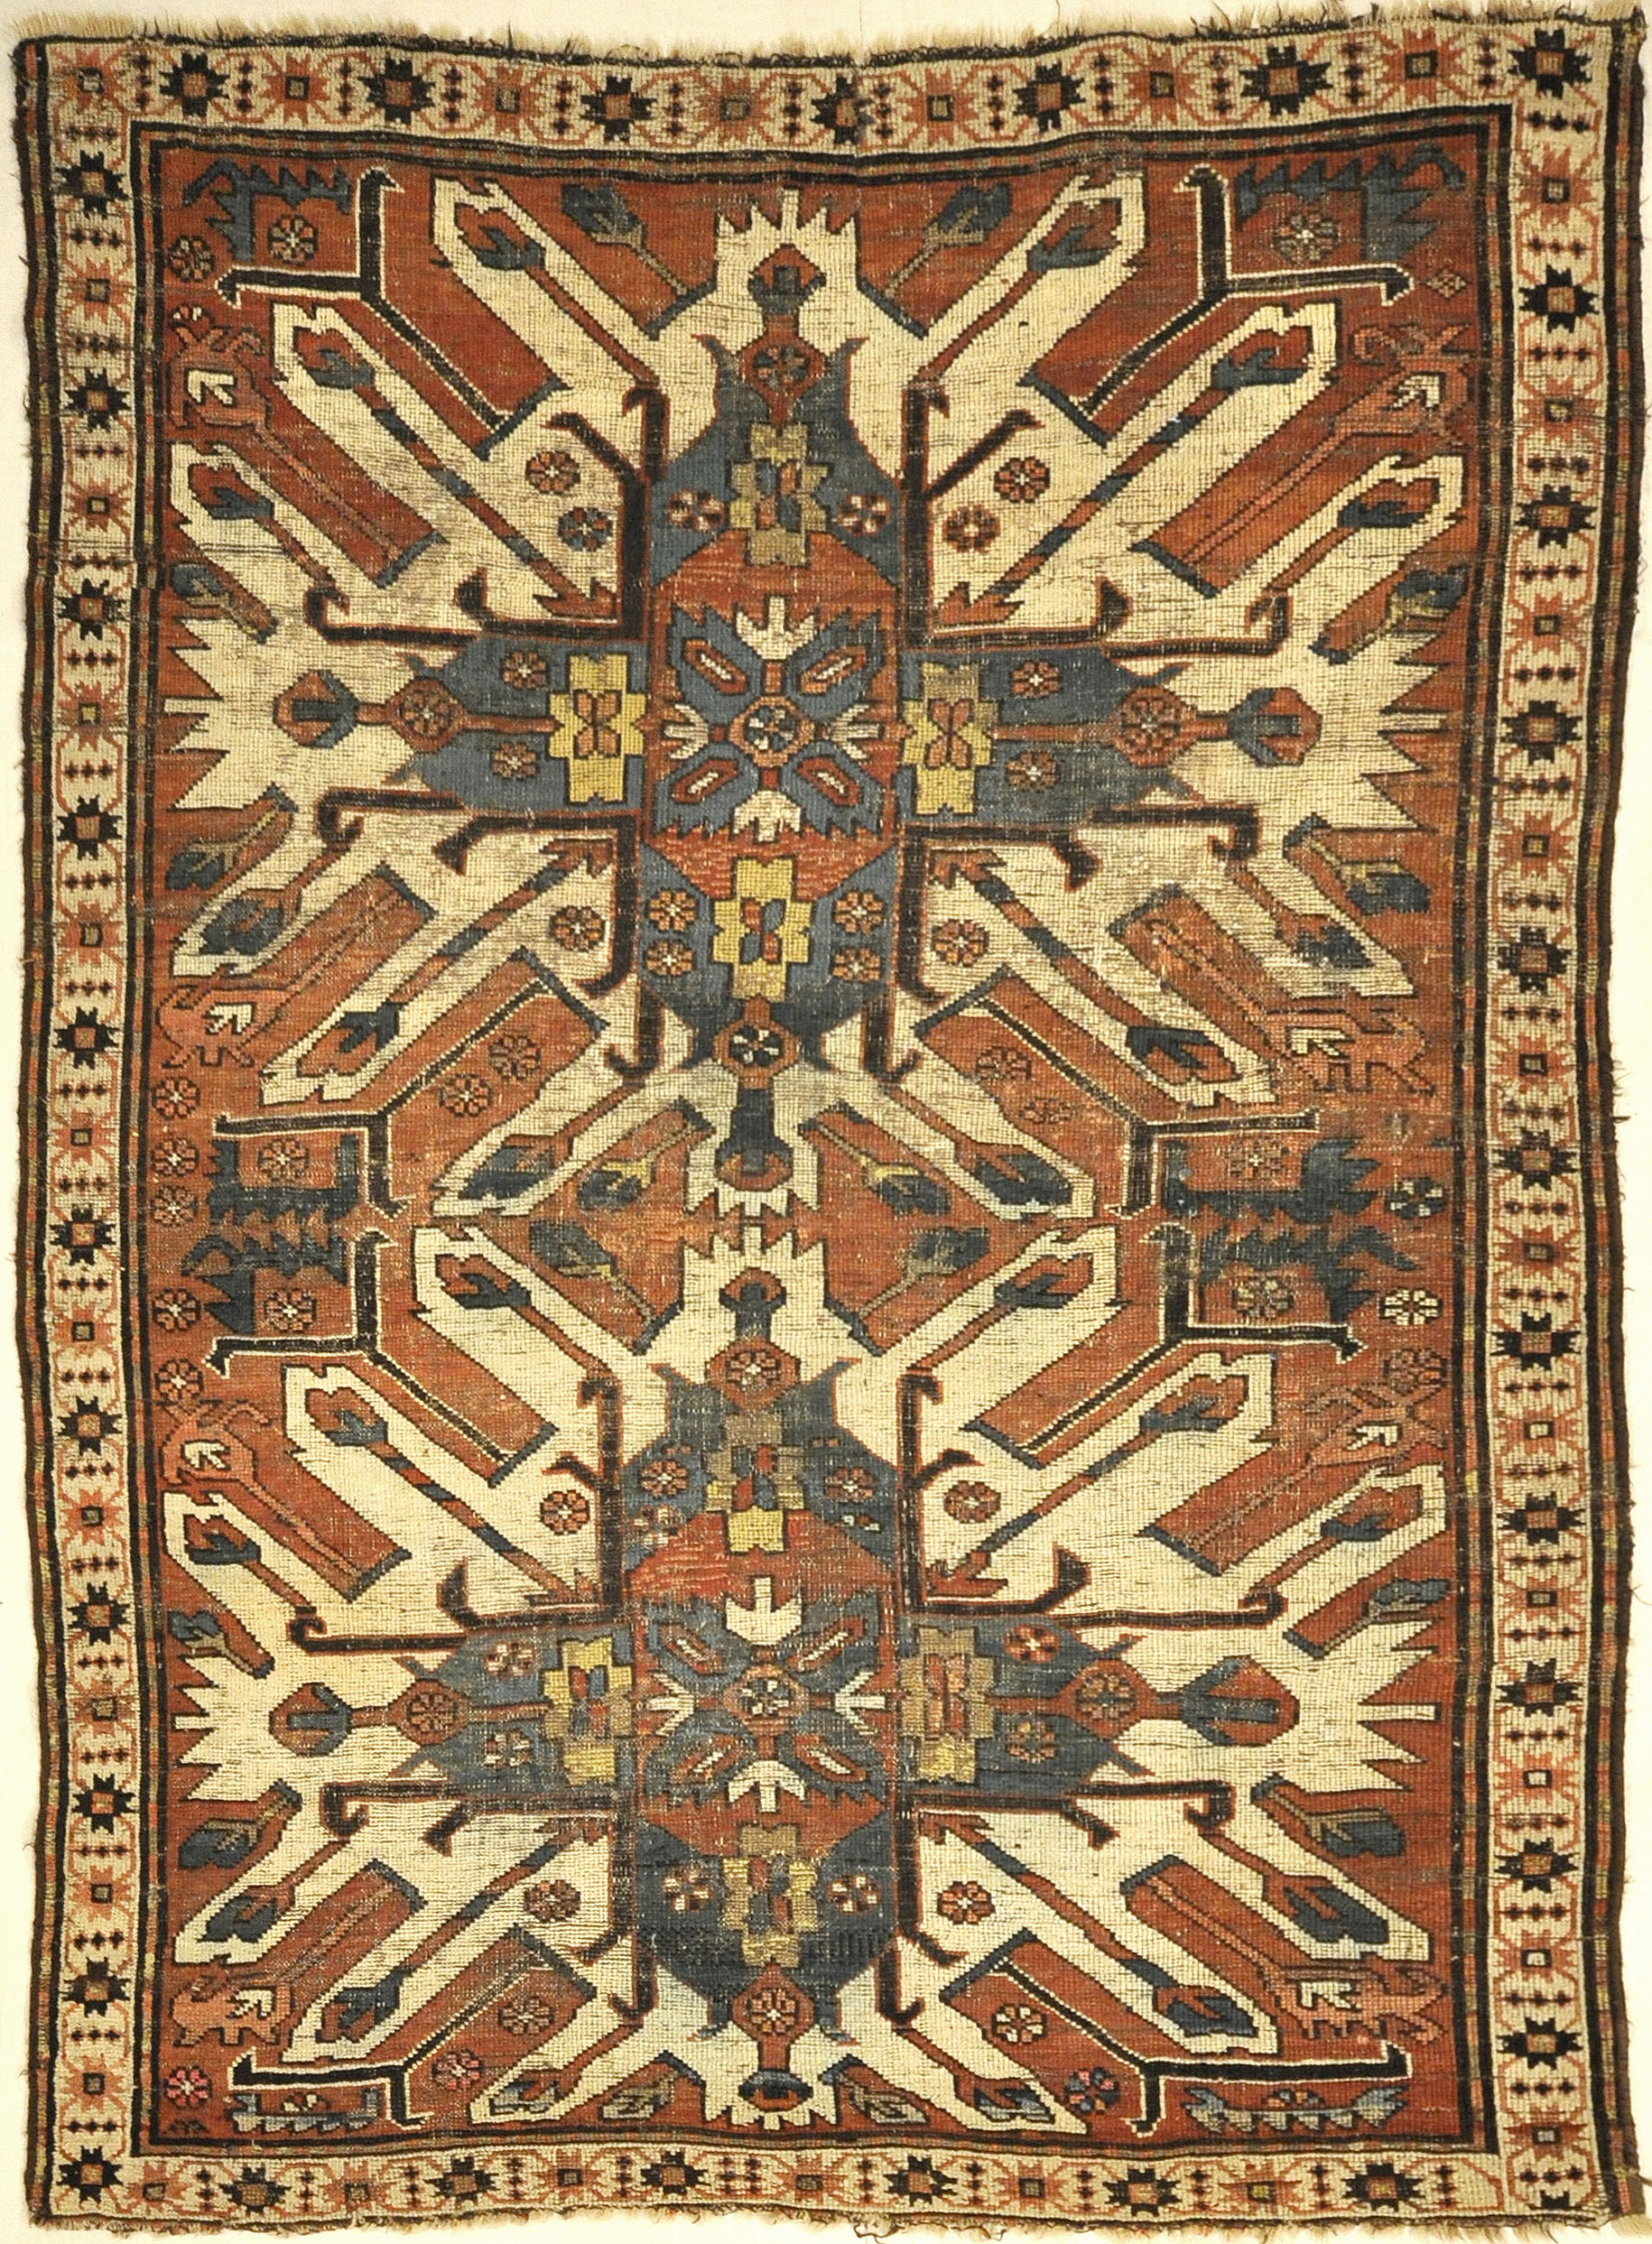 Antique Eagle Kazak Chelaberd Rug. A piece of genuine authentic woven carpet art sold by Santa Barbara Design Center Rugs and More.